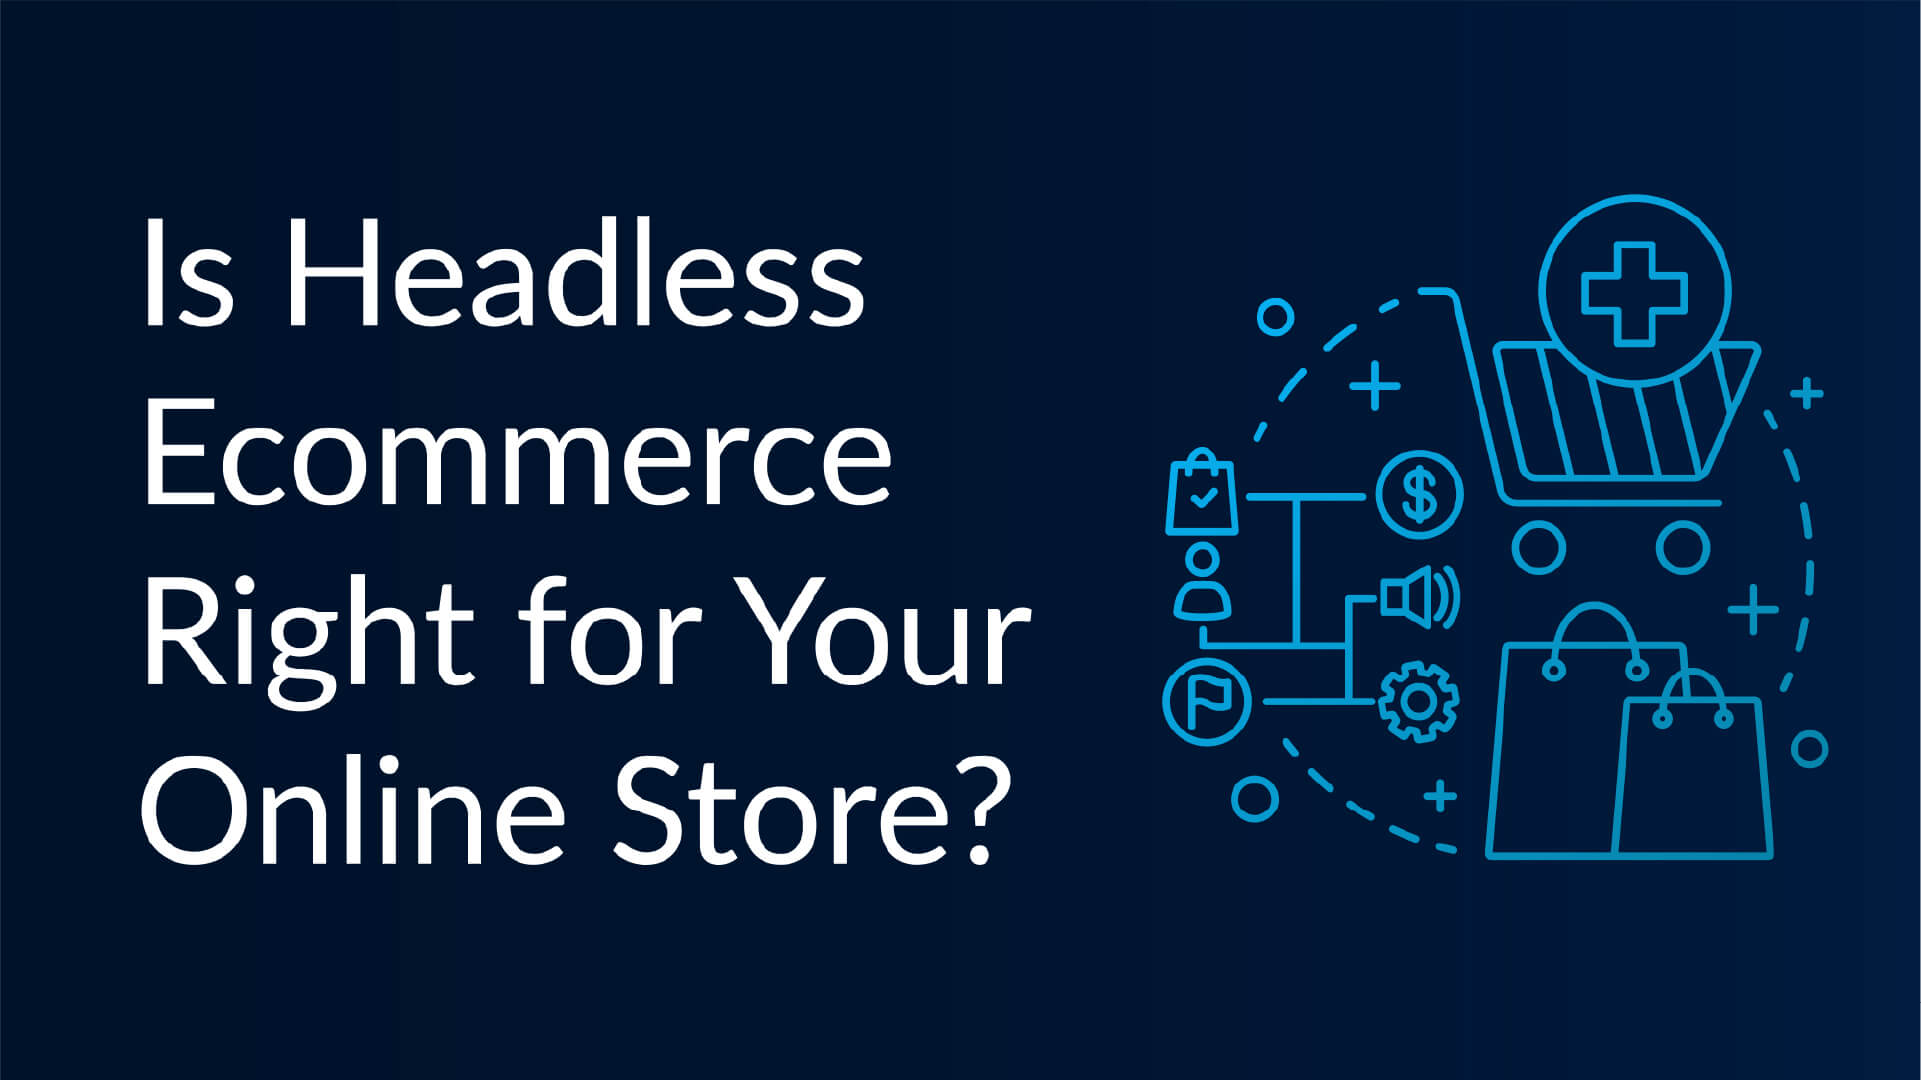 shuup - is headless ecommerce right for your store